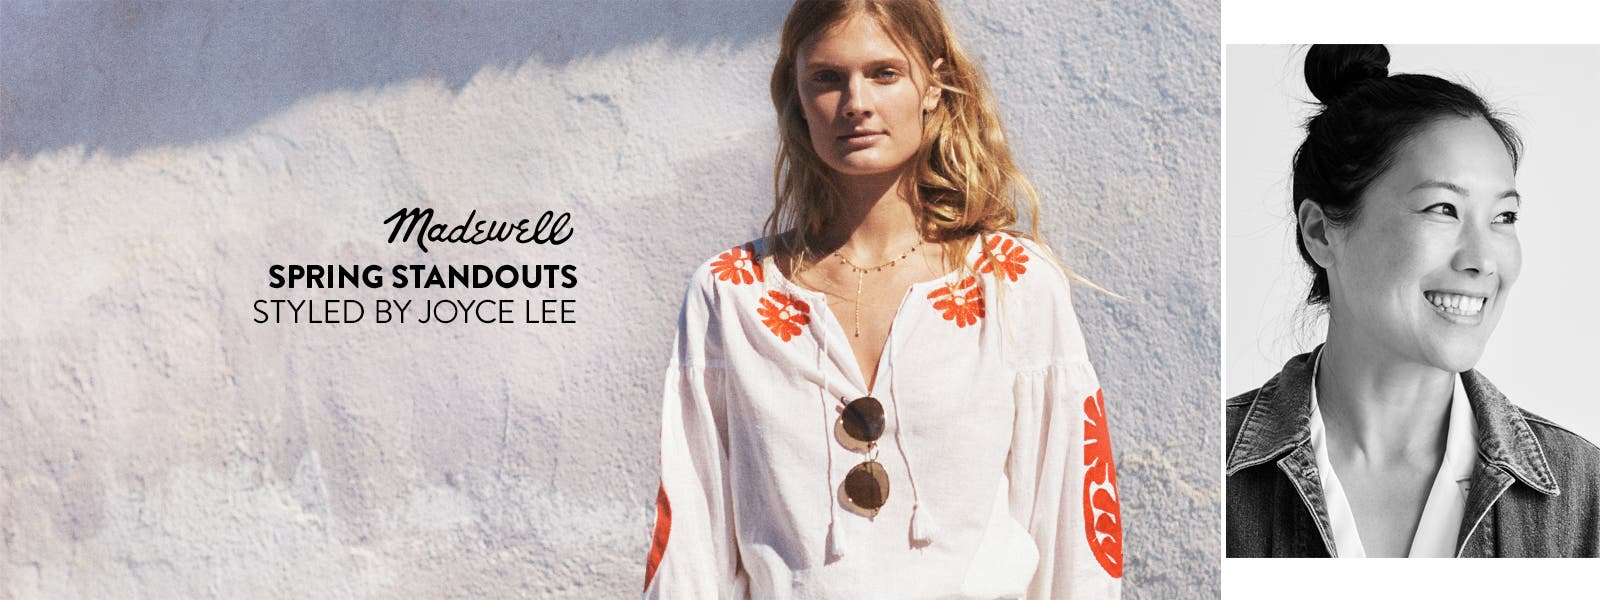 Madewell spring standouts styled by Joyce Lee.